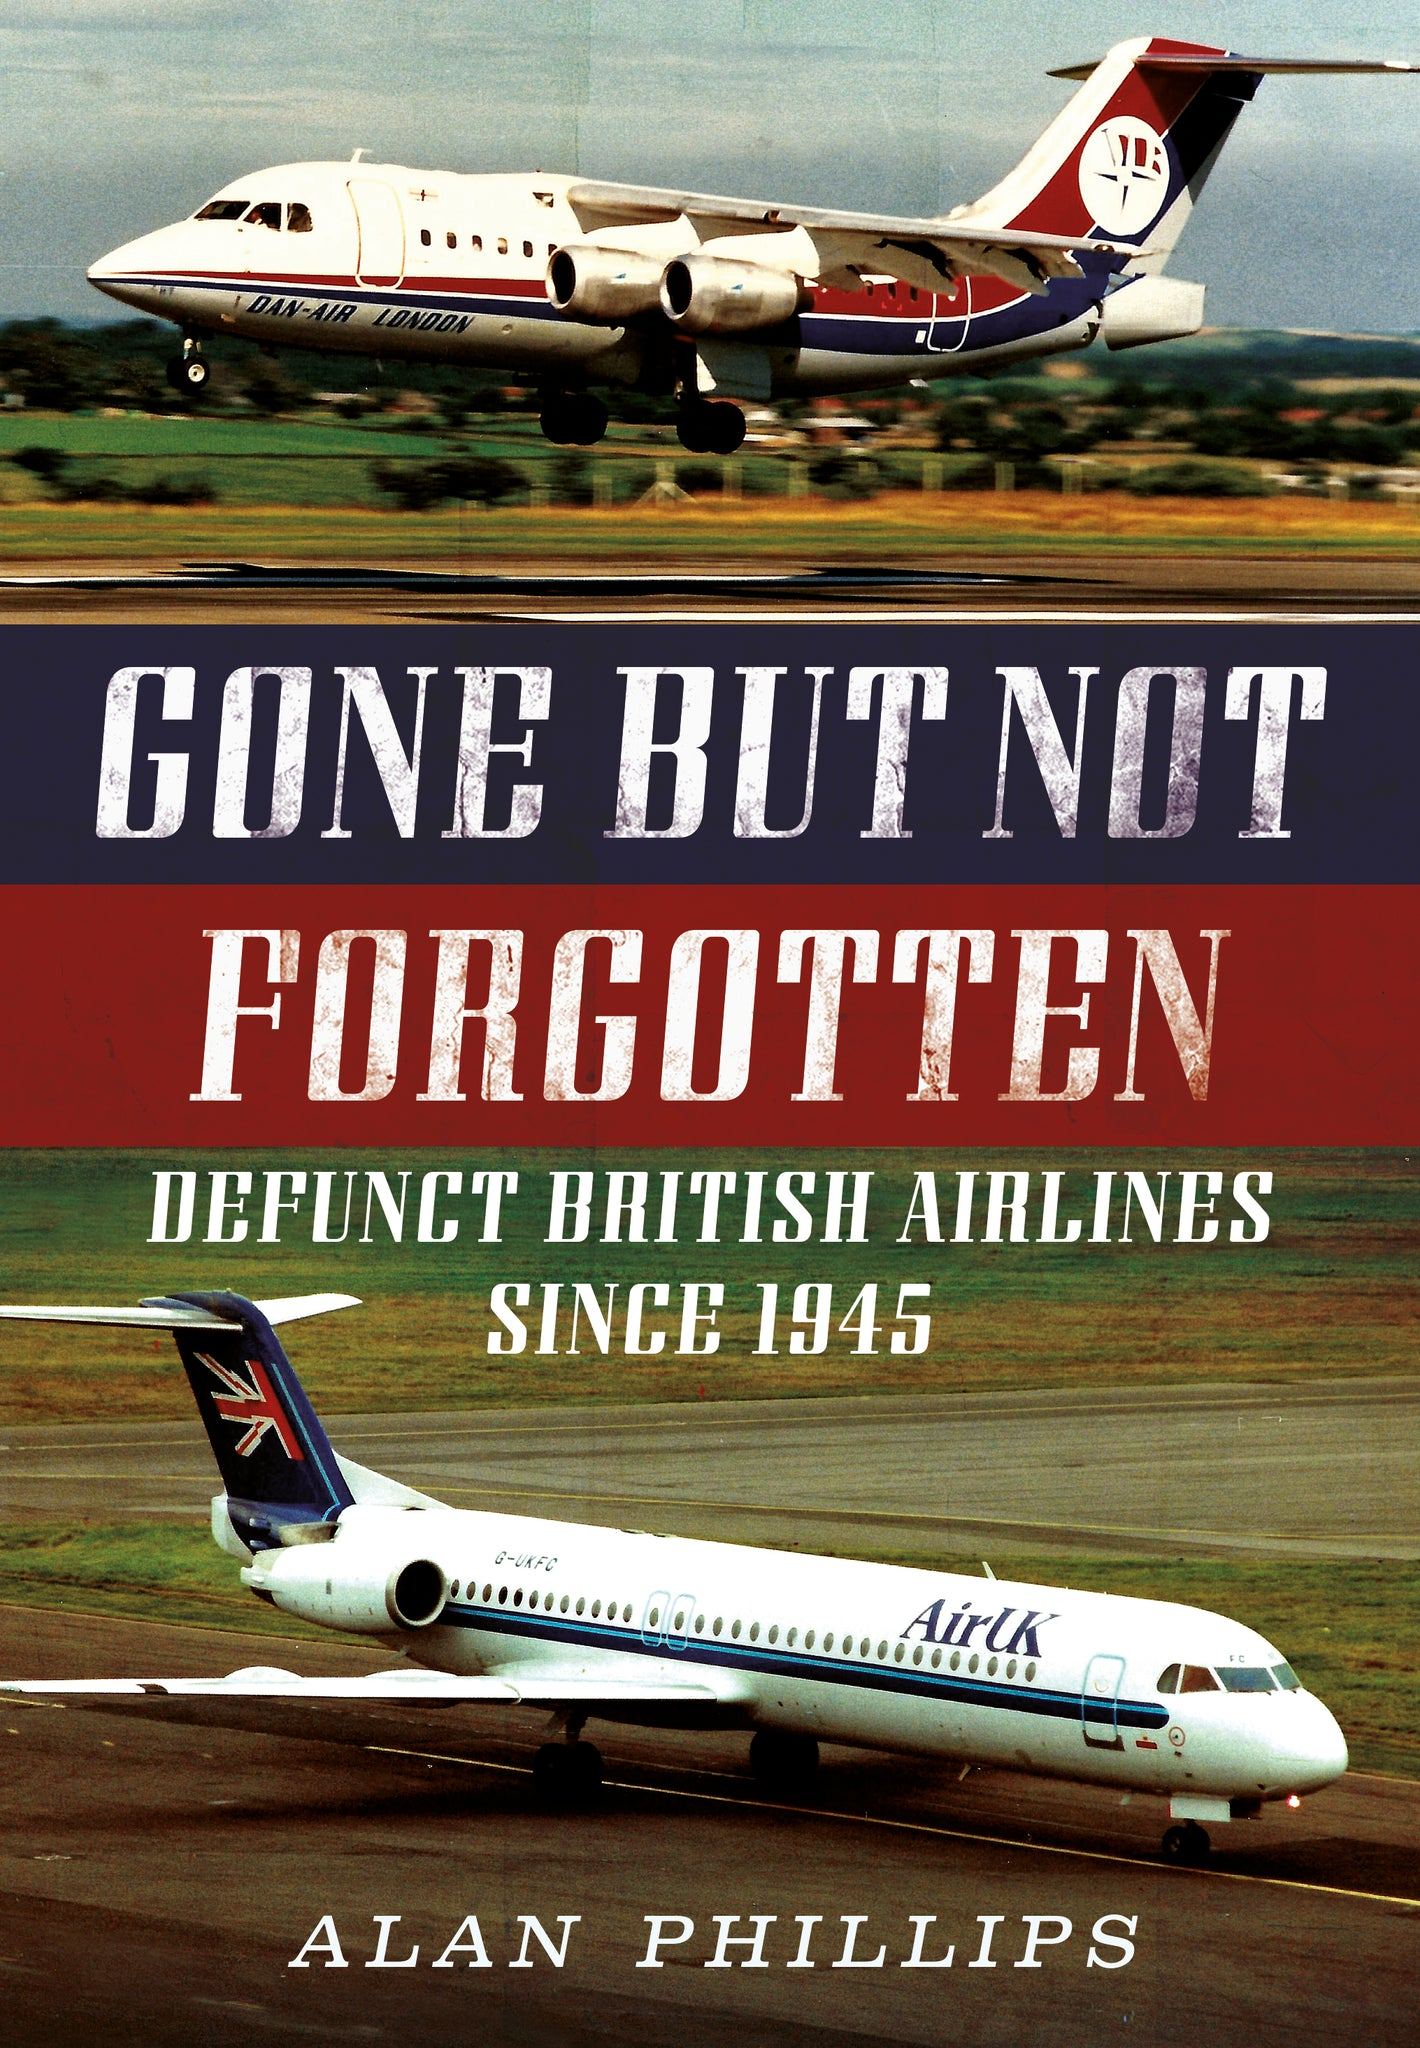 Gone but not Forgotten: Defunct British Airlines Since 1945